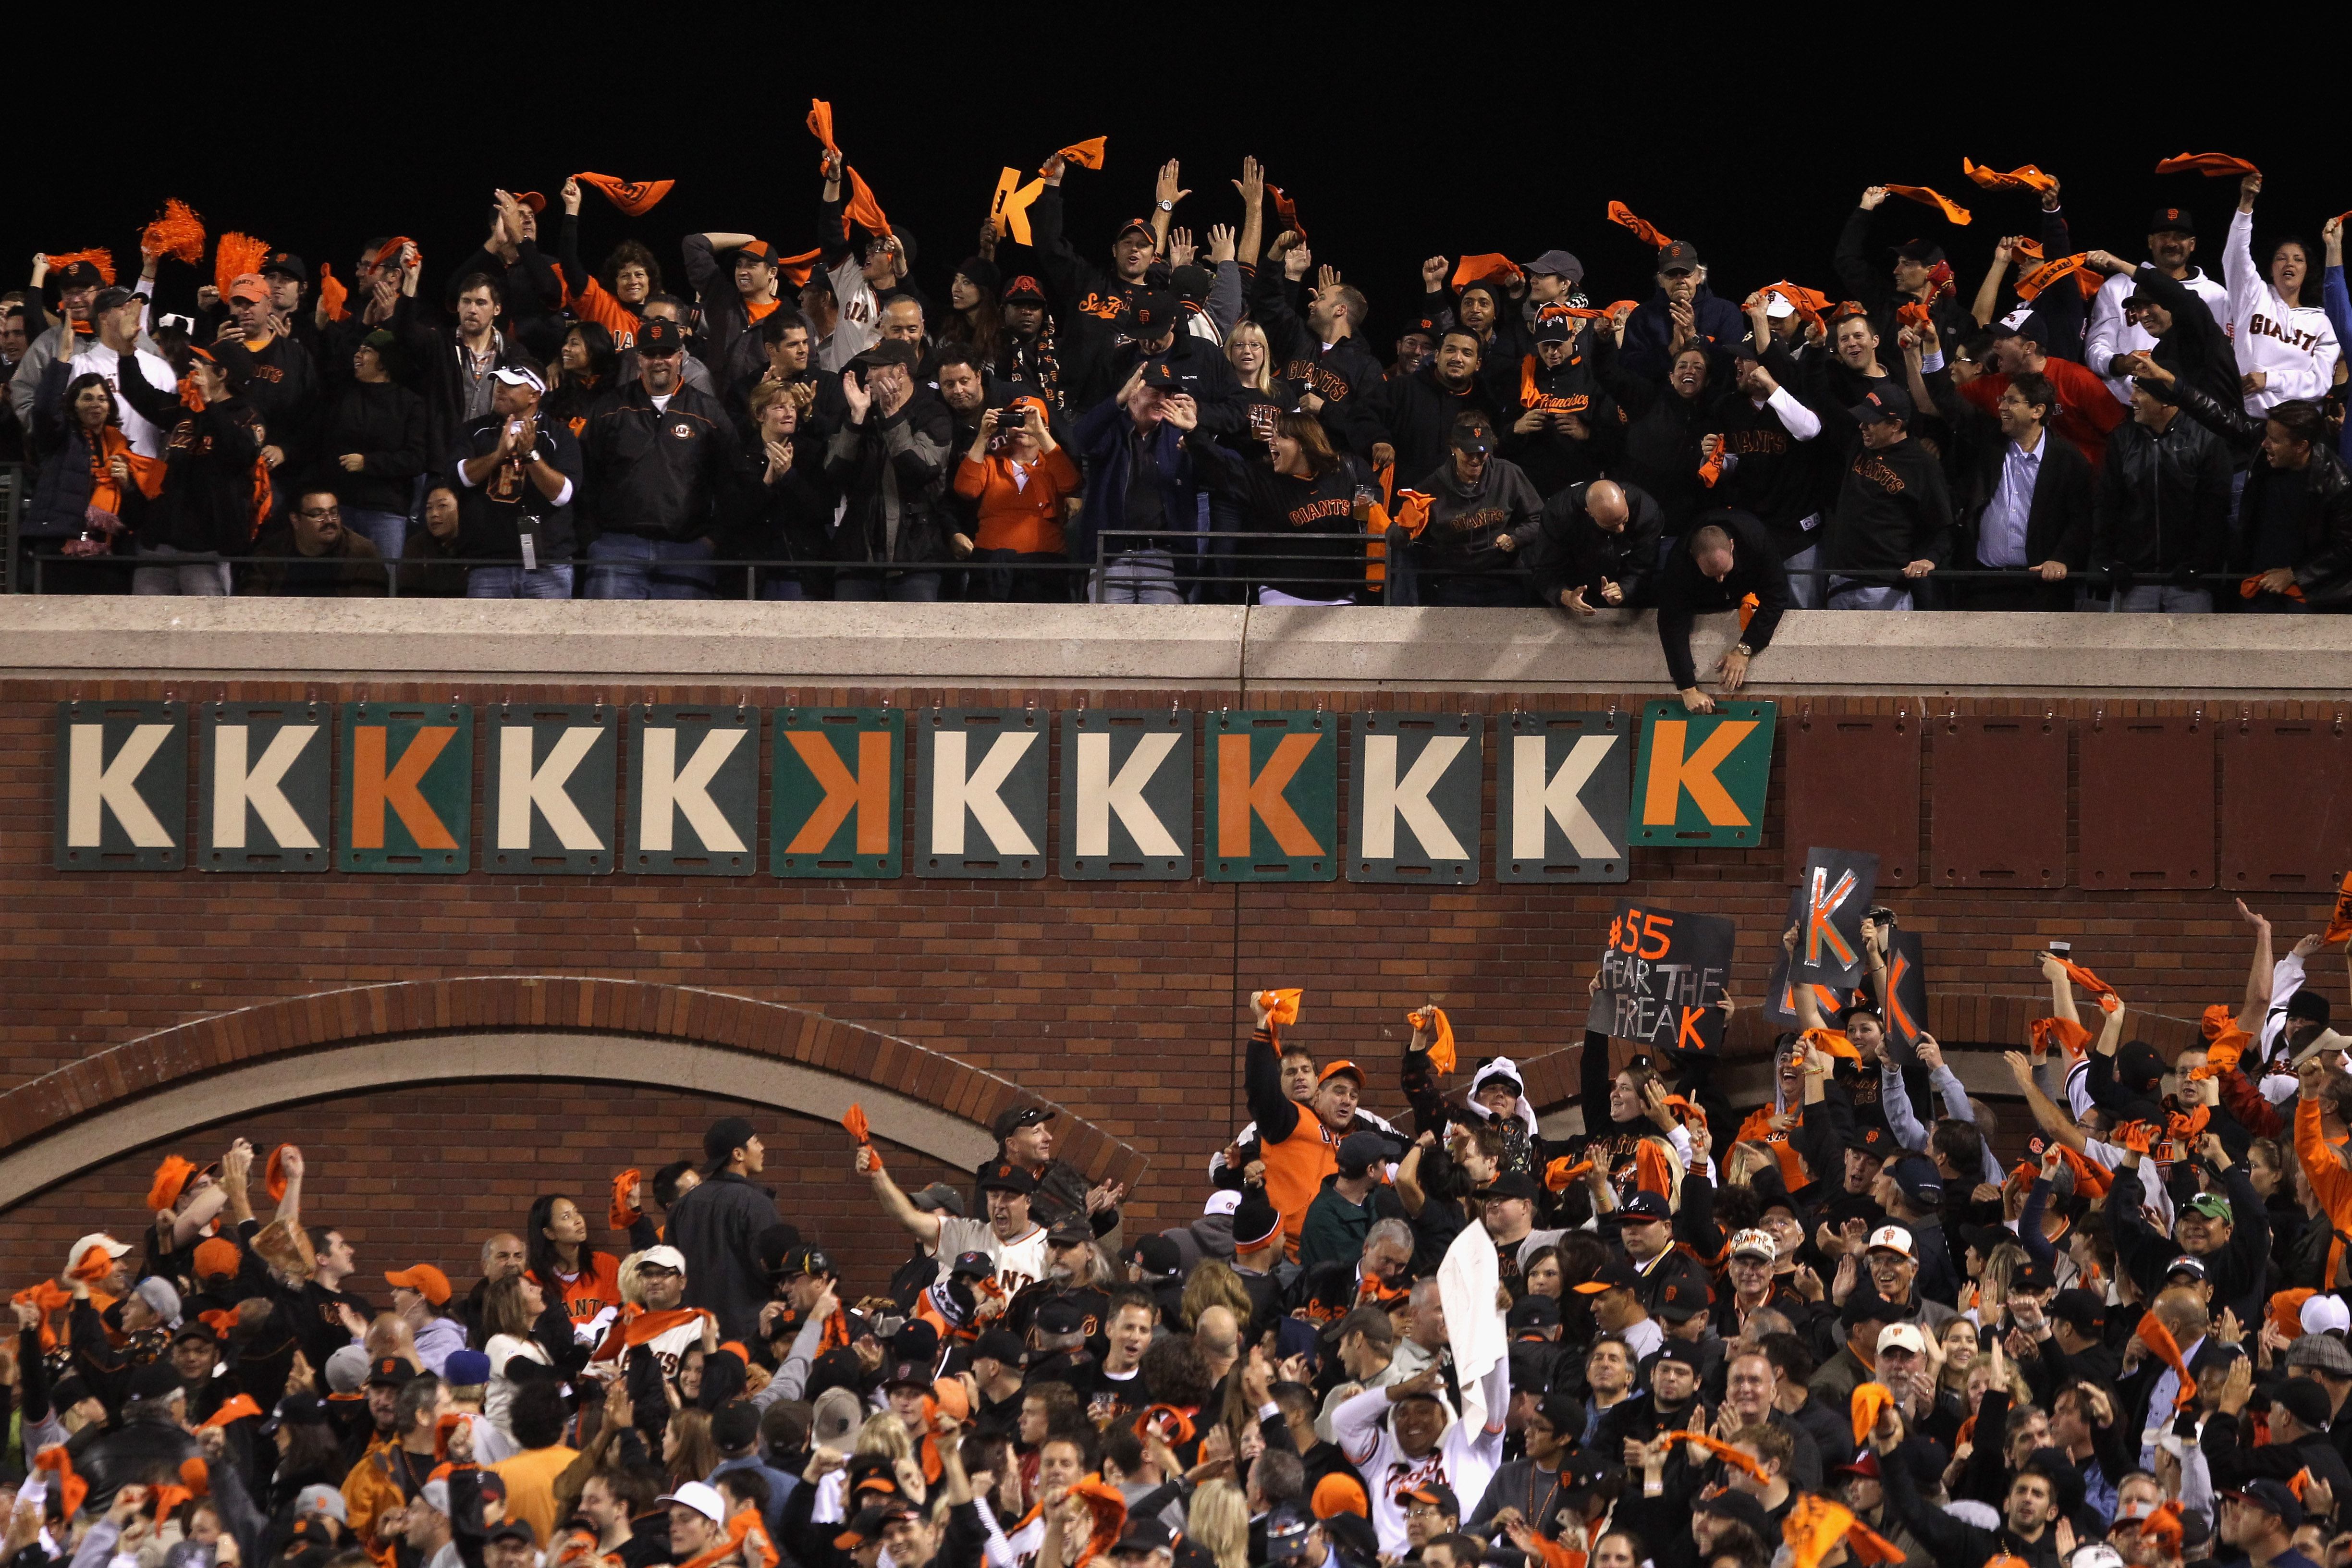 SAN FRANCISCO - OCTOBER 07:  Fans put up another K after Tim Lincecum #55 of the San Francisco Giants struck out Eric Hinske #20 of the Atlanta Braves to end the eighth inning of game 1 of the NLDS at AT&T Park on October 7, 2010 in San Francisco, Califor